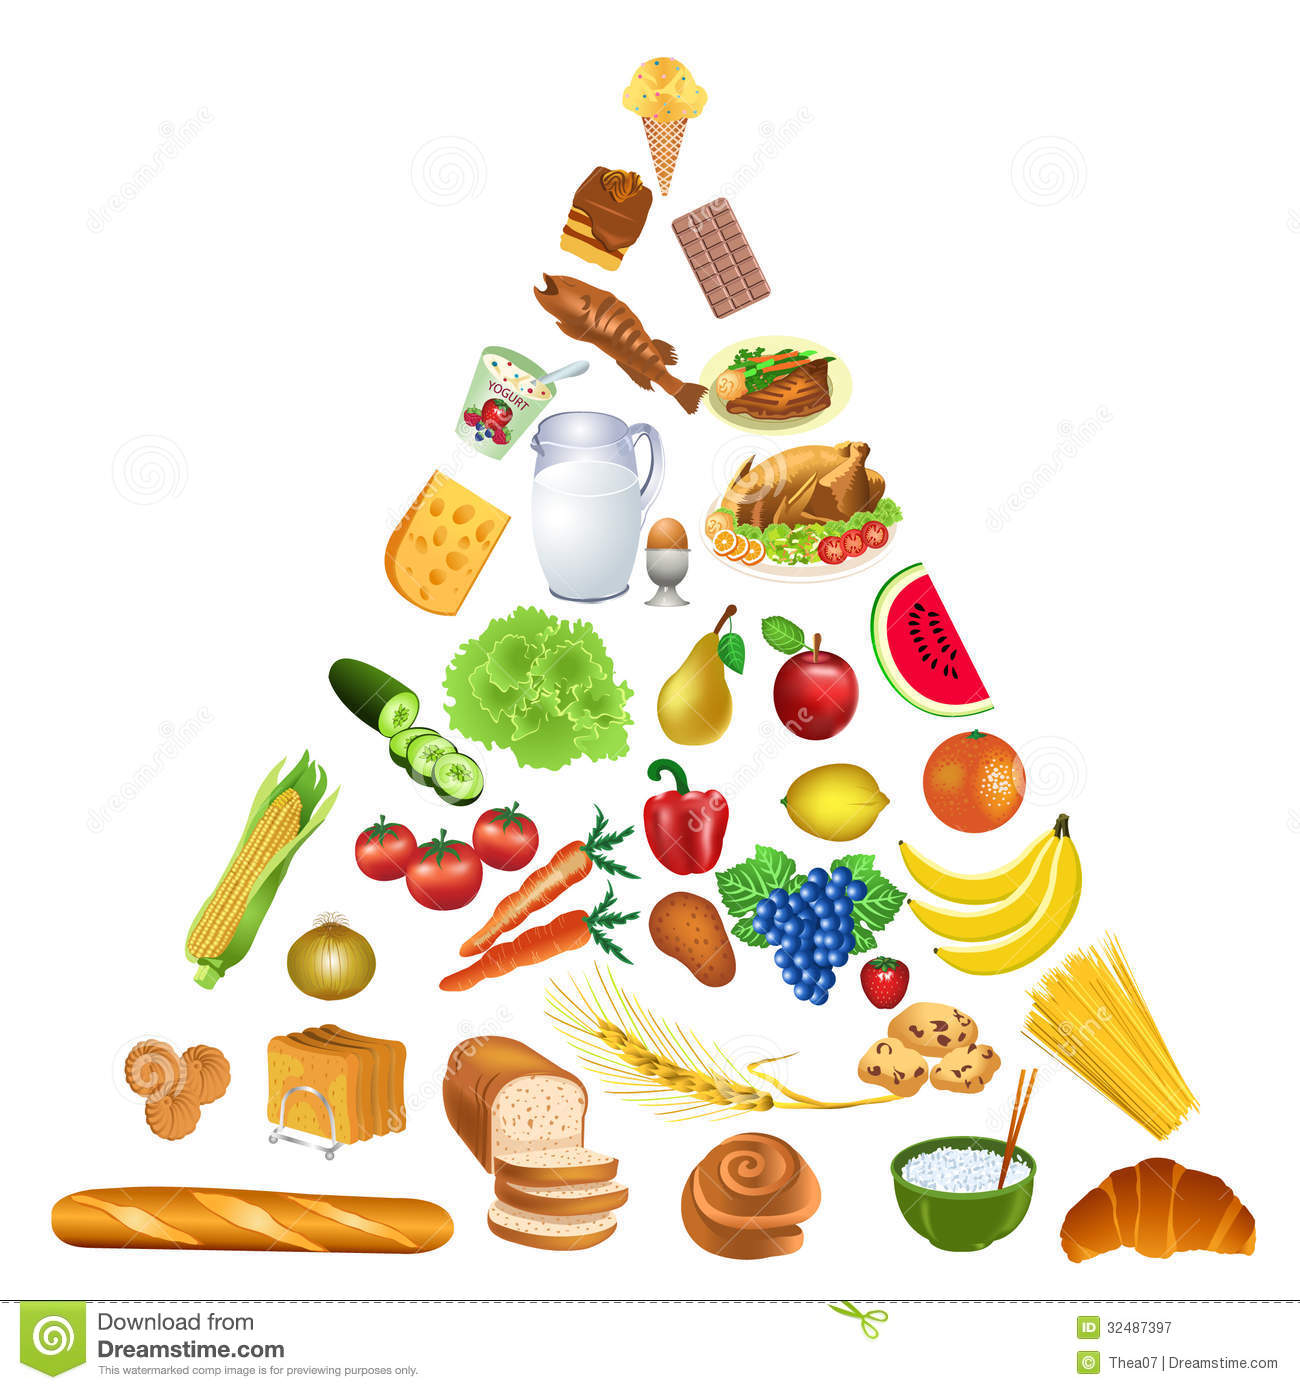 Food Pyramid Free Clipart.